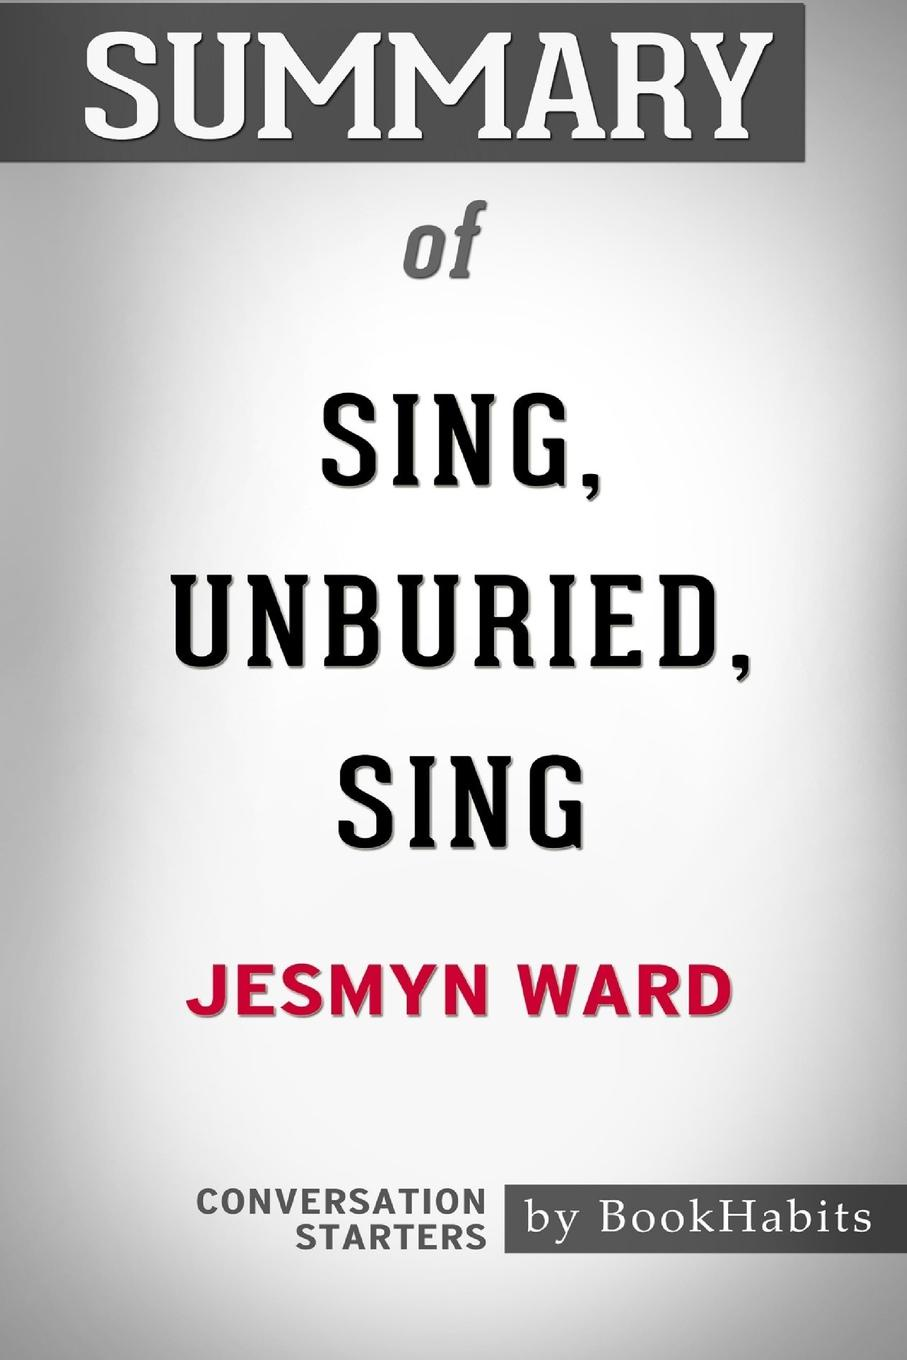 цены BookHabits Summary of Sing, Unburied, Sing by Jesmyn Ward. Conversation Starters